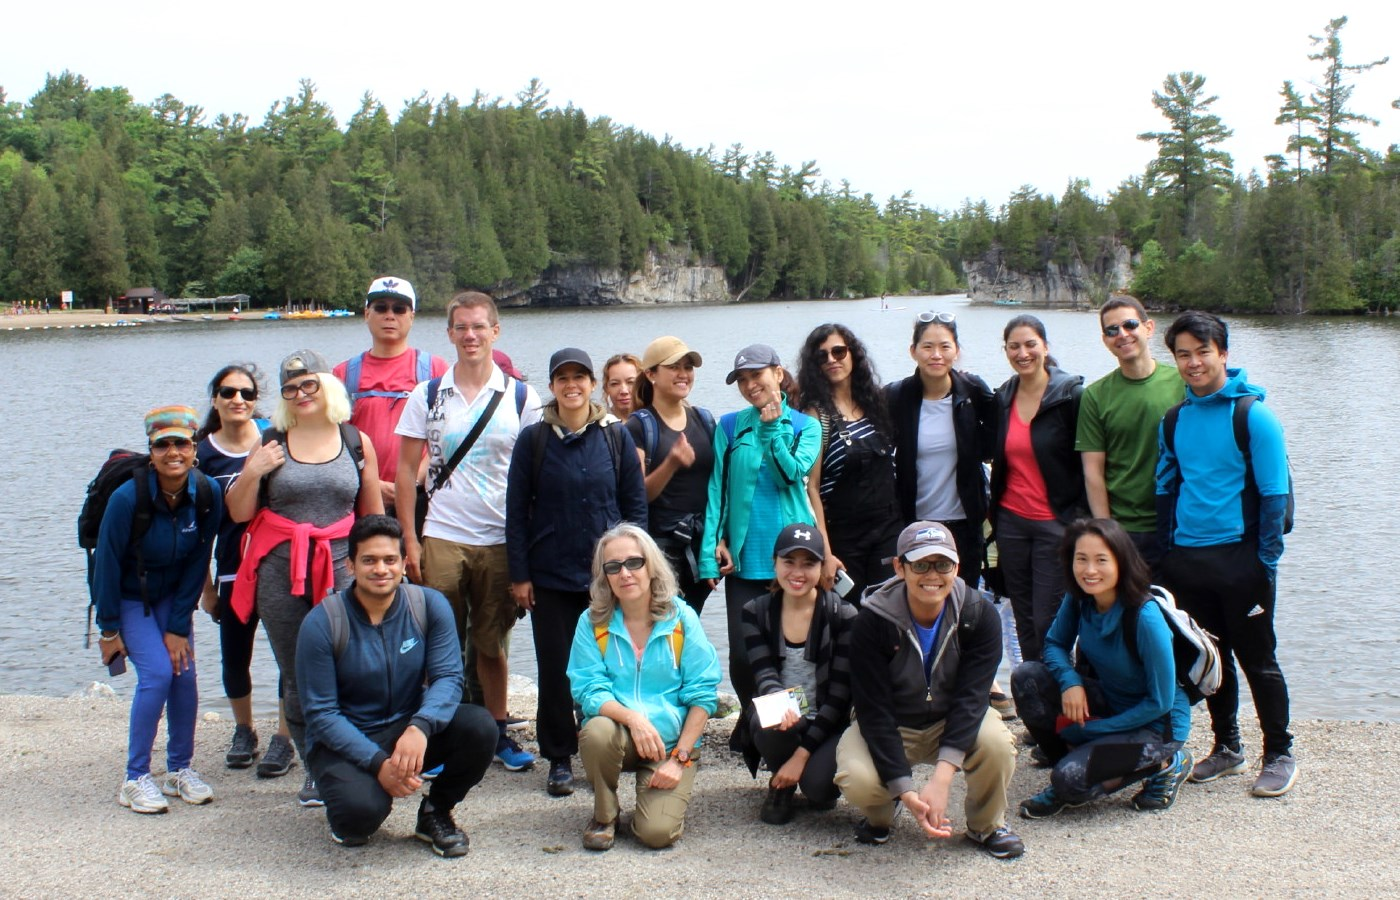 Rockwood hiking photos #Parkbus: Sat, Jun 2